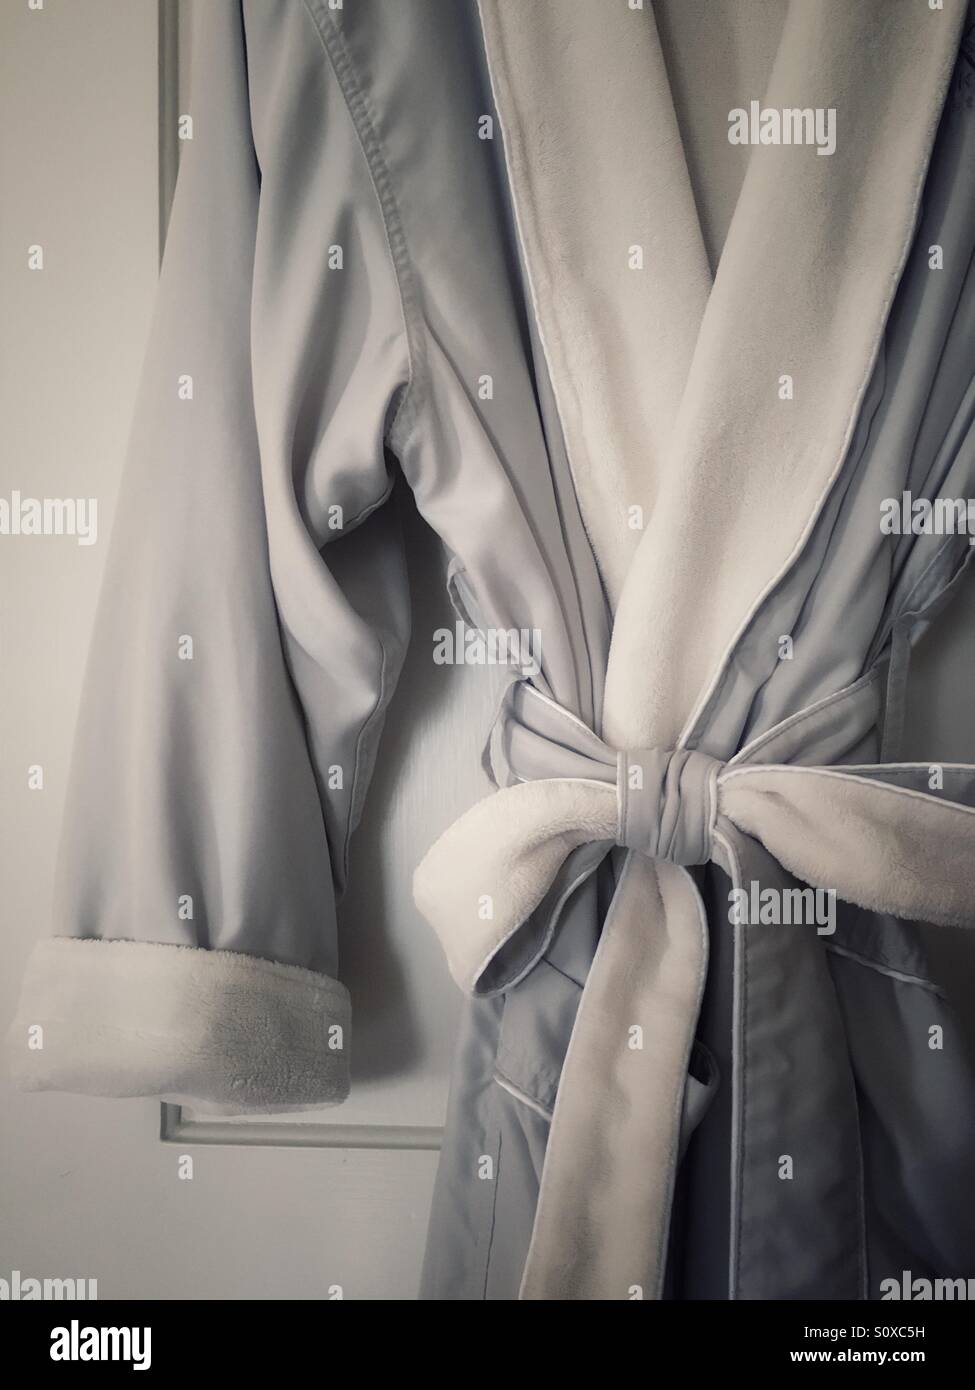 Robe in boutique hotel - Stock Image